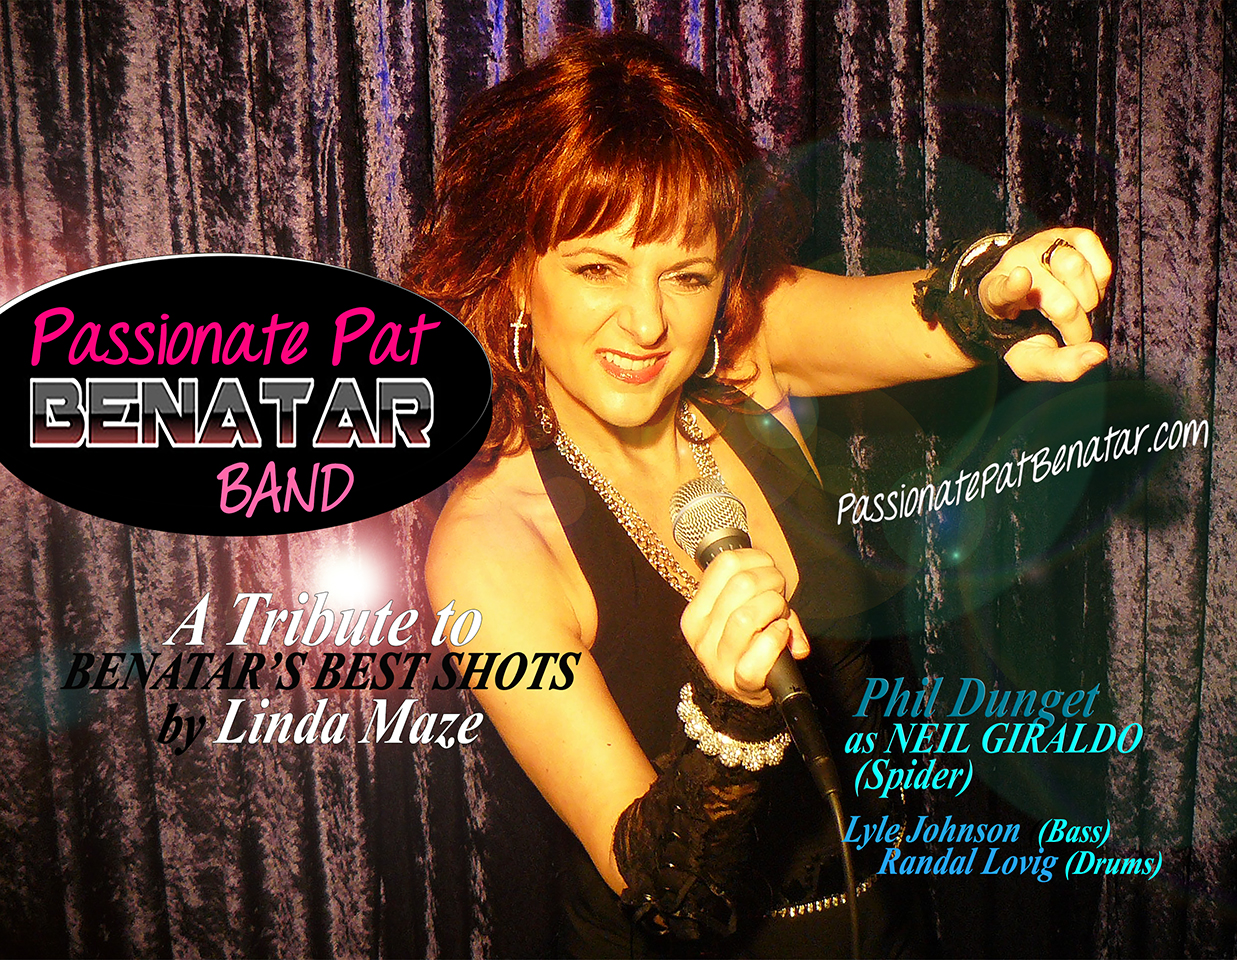 ABOUT Passionate Pat Benatar - A Tribute to Benatar's Best Shots